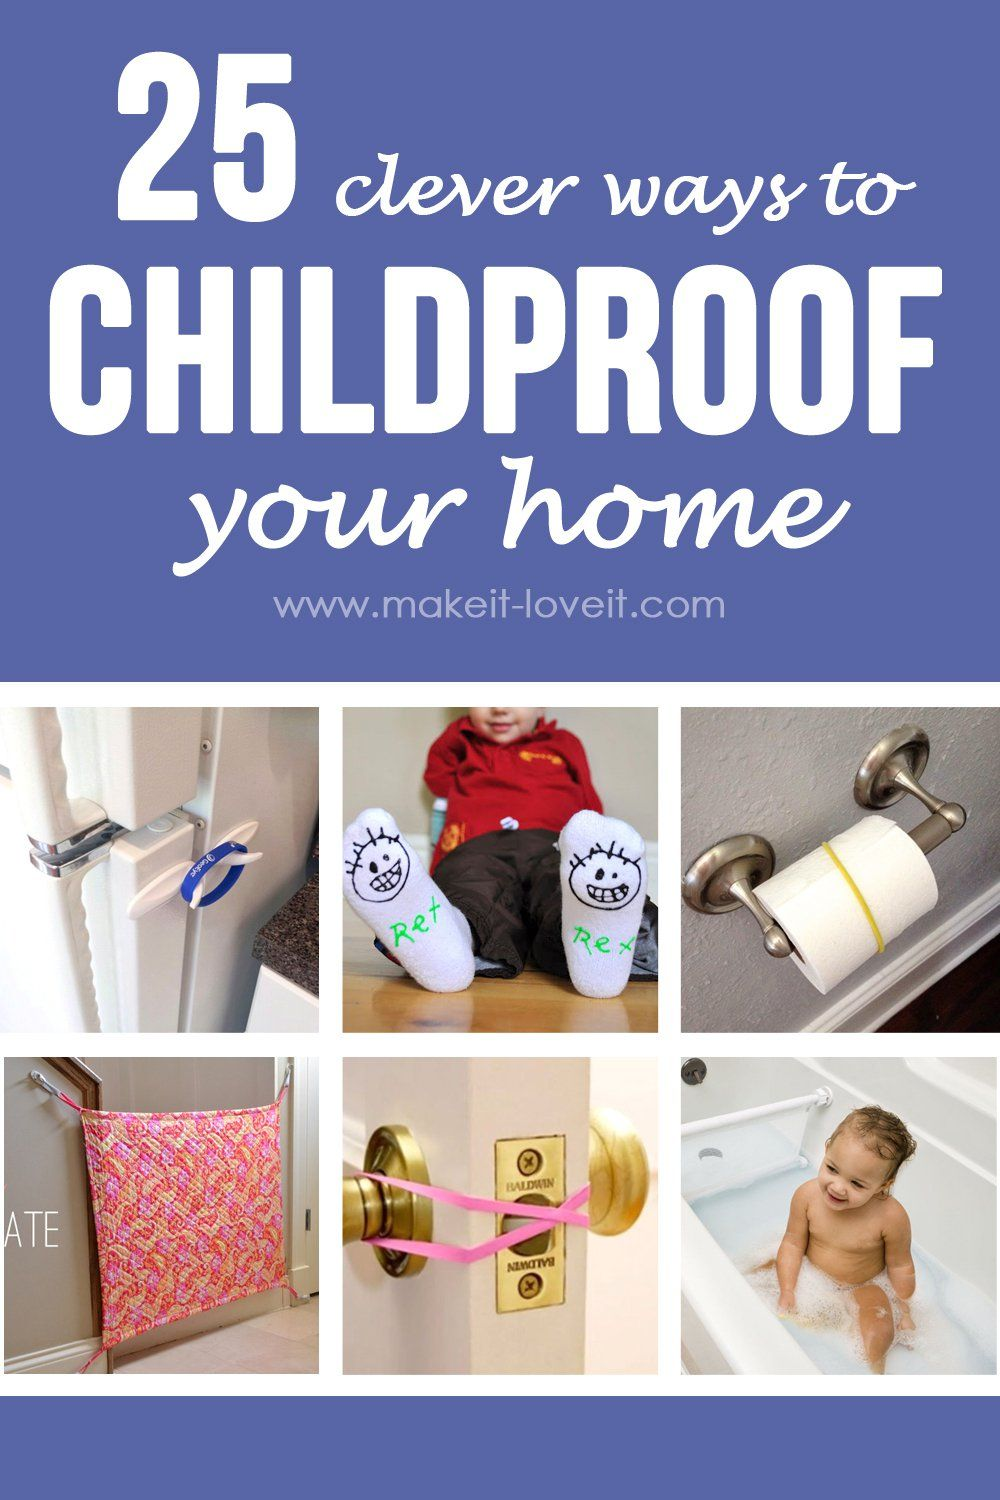 25 Clever Ways to Childproof Your Home (...plus a little update on ...